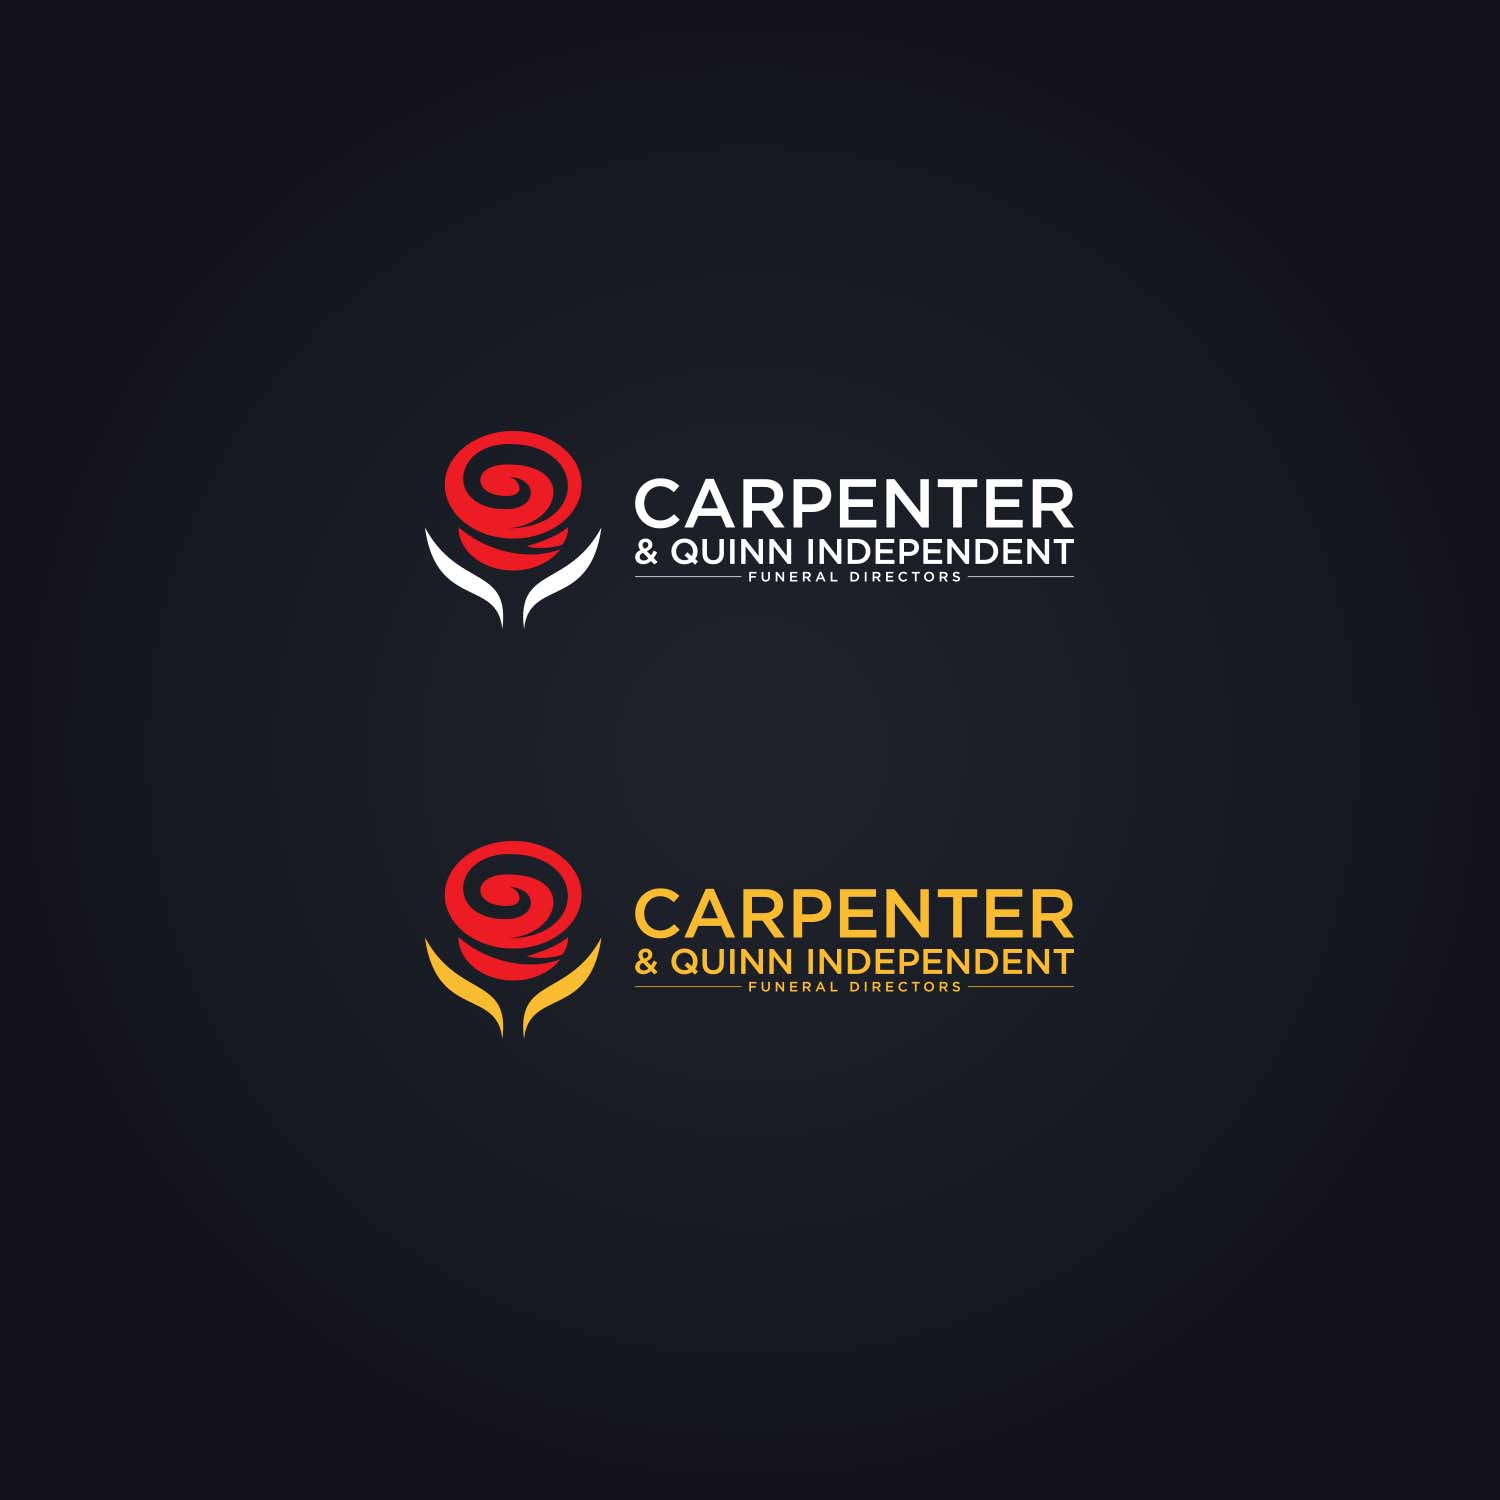 Funeral Home Logo Design for Carpenter